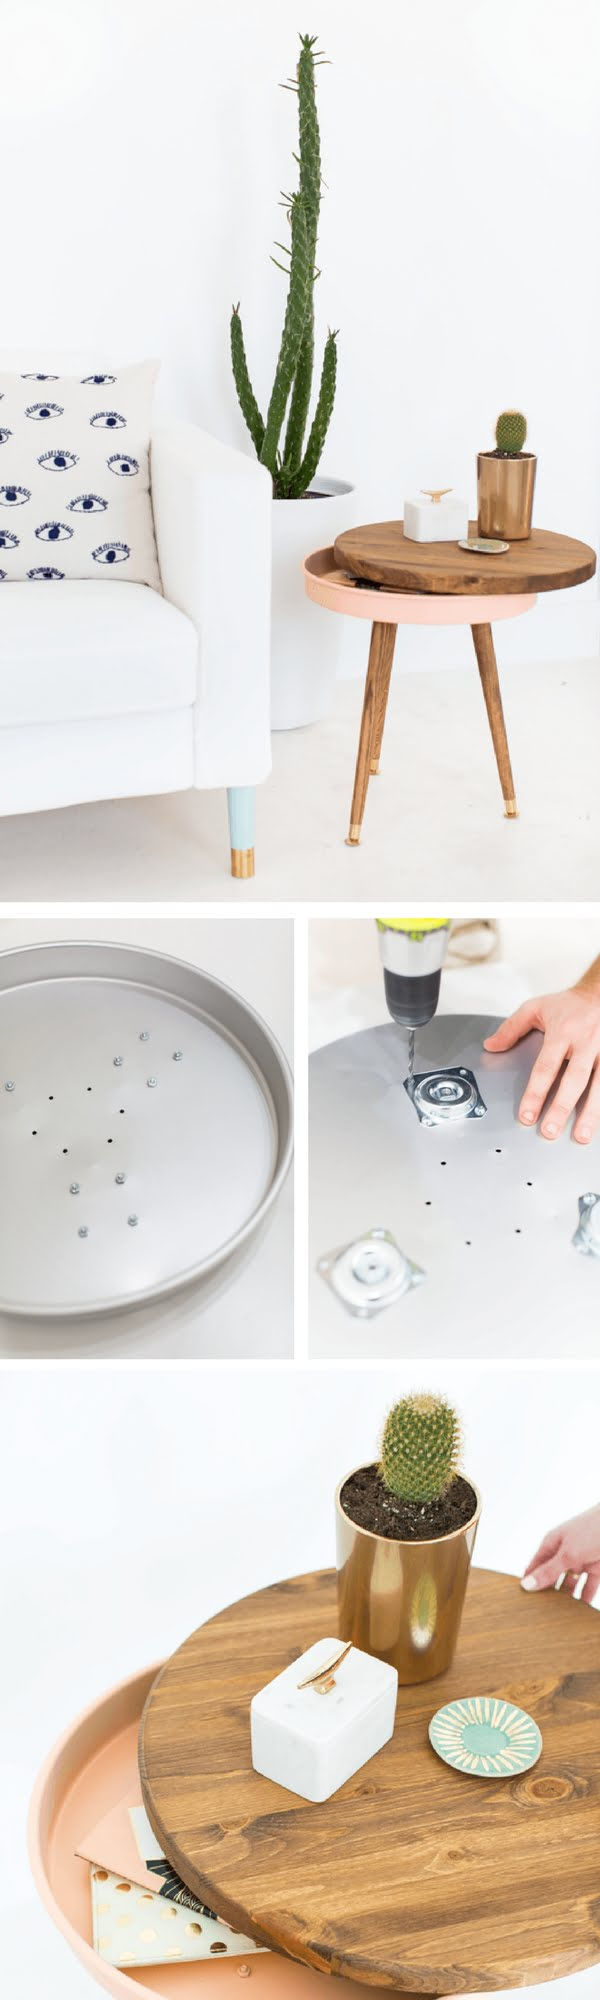 18 Easy DIY Sofa Side Tables You Can Build on a Budget - Check out the tutorial how make a DIY mid-century sofa side table